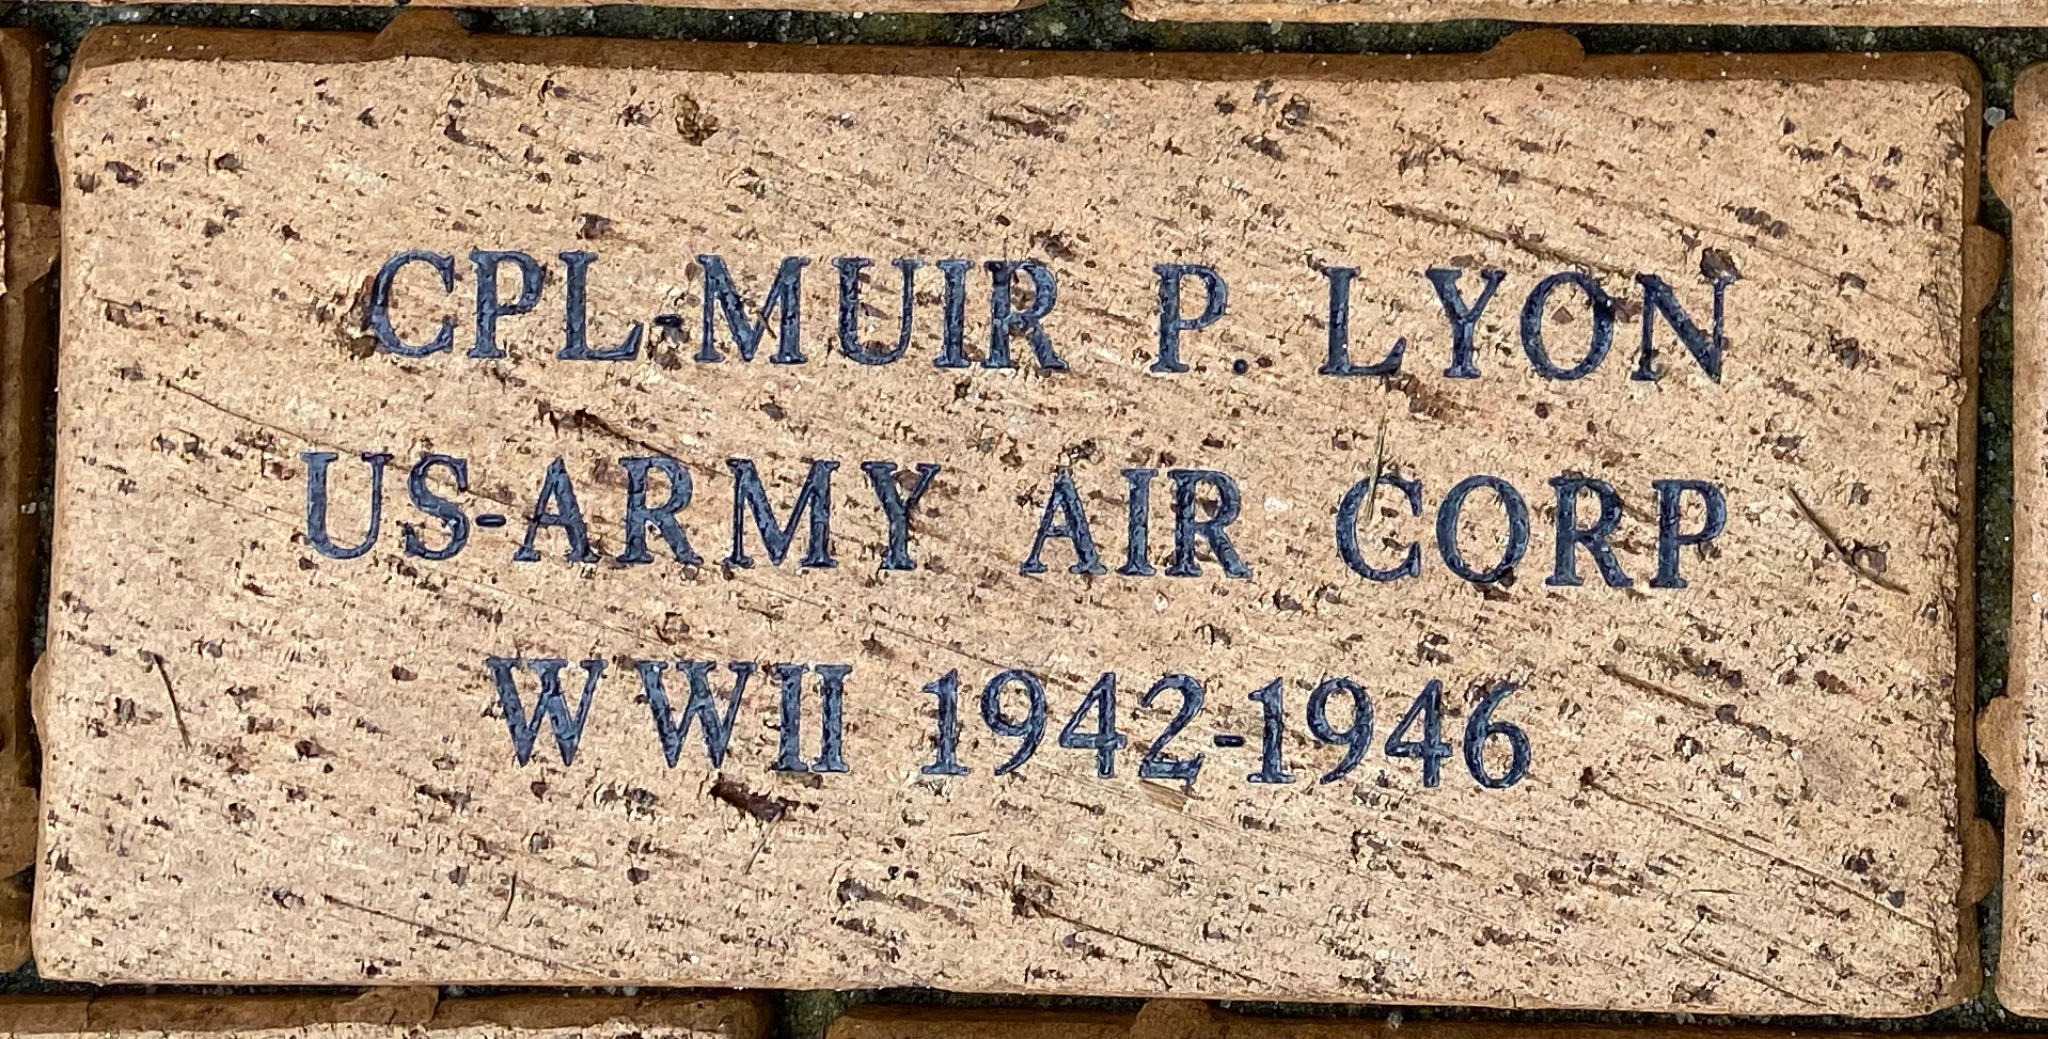 CPL MUIR P. LYON US-ARMY AIR CORP WWII 1942-1946